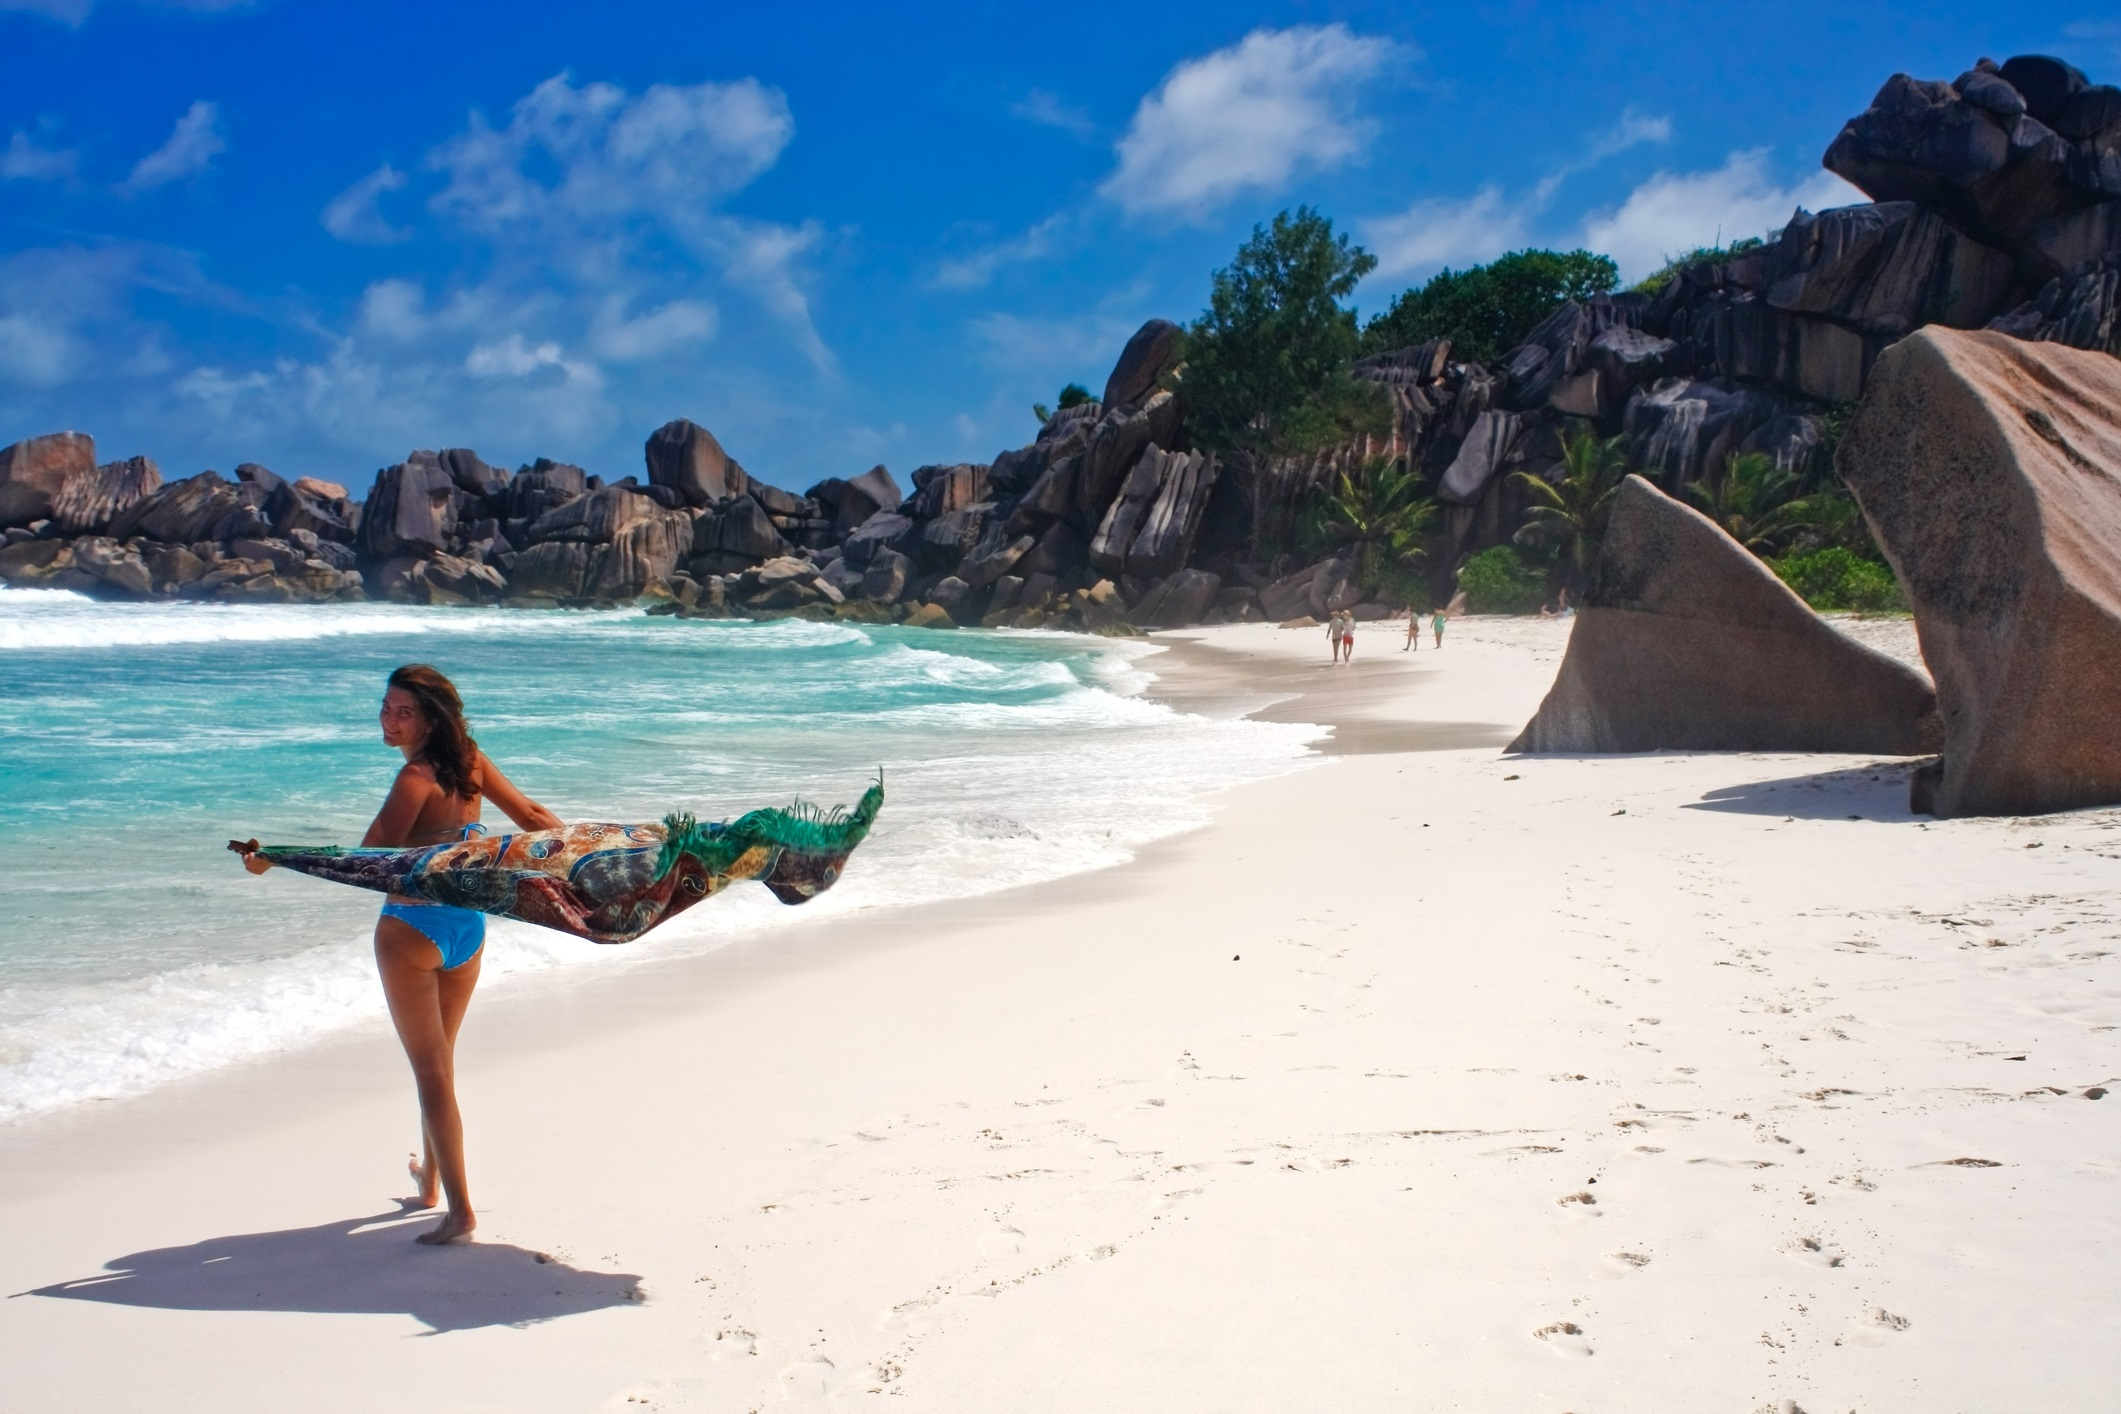 Young woman walking on tropical beach called Grande Anse, La Digue Island, Seychelles, Indian Ocean.